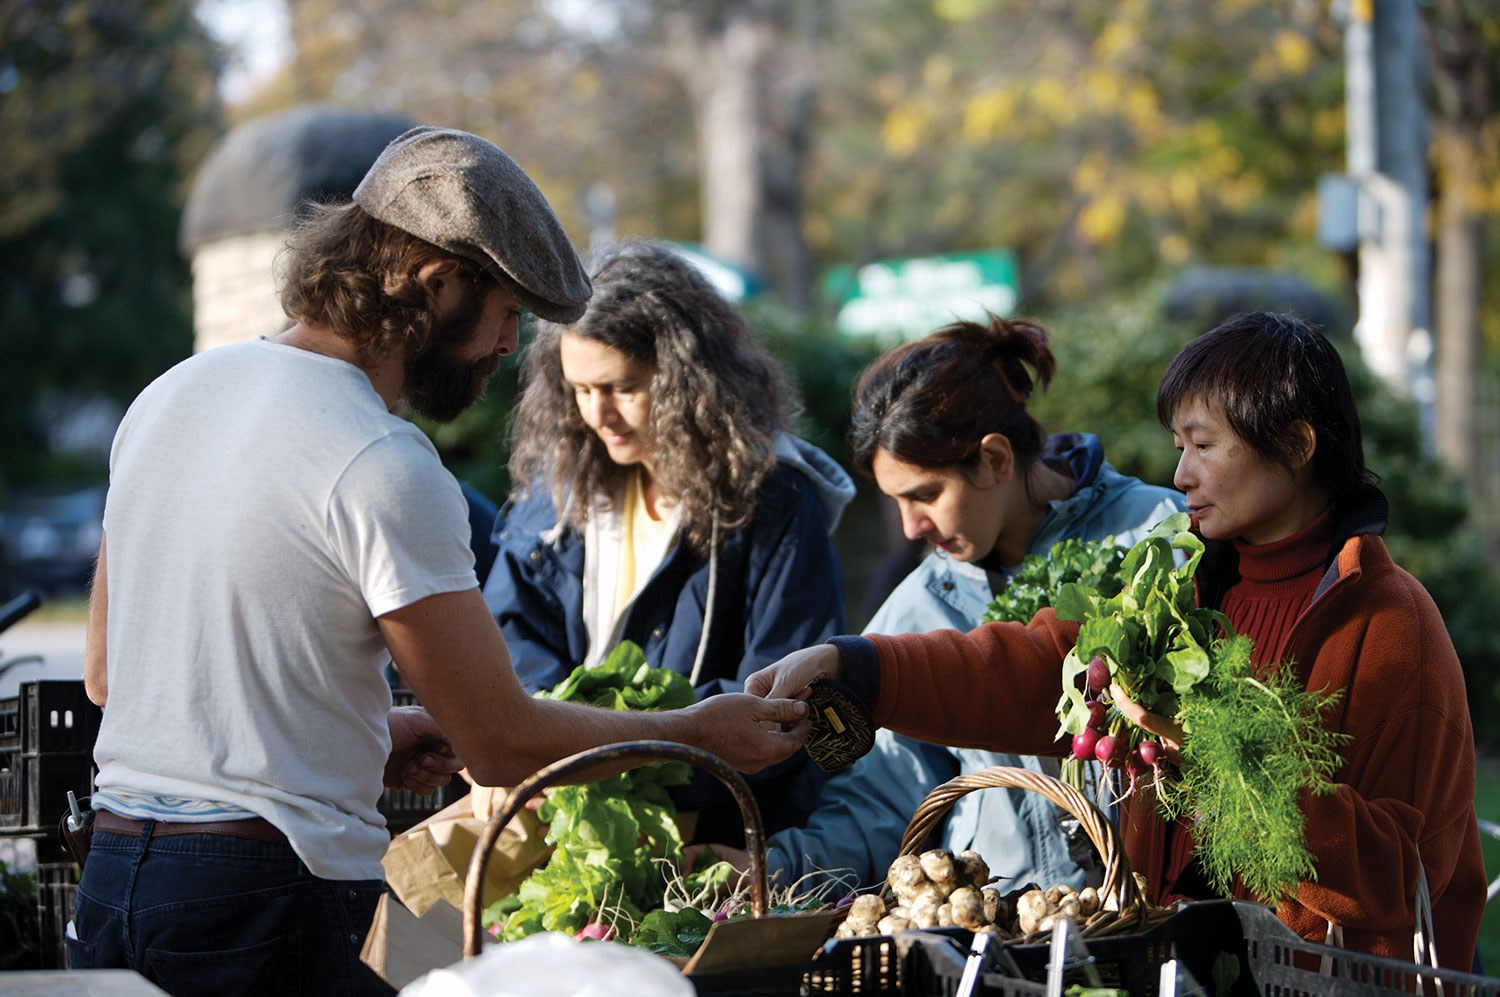 """Right across Ontario, """"Eat local"""" and """"Buy fresh Buy local"""" initiatives have been established, encouraging consumers to connect directly with local farmers. (Photo: Ontario Tourism)"""